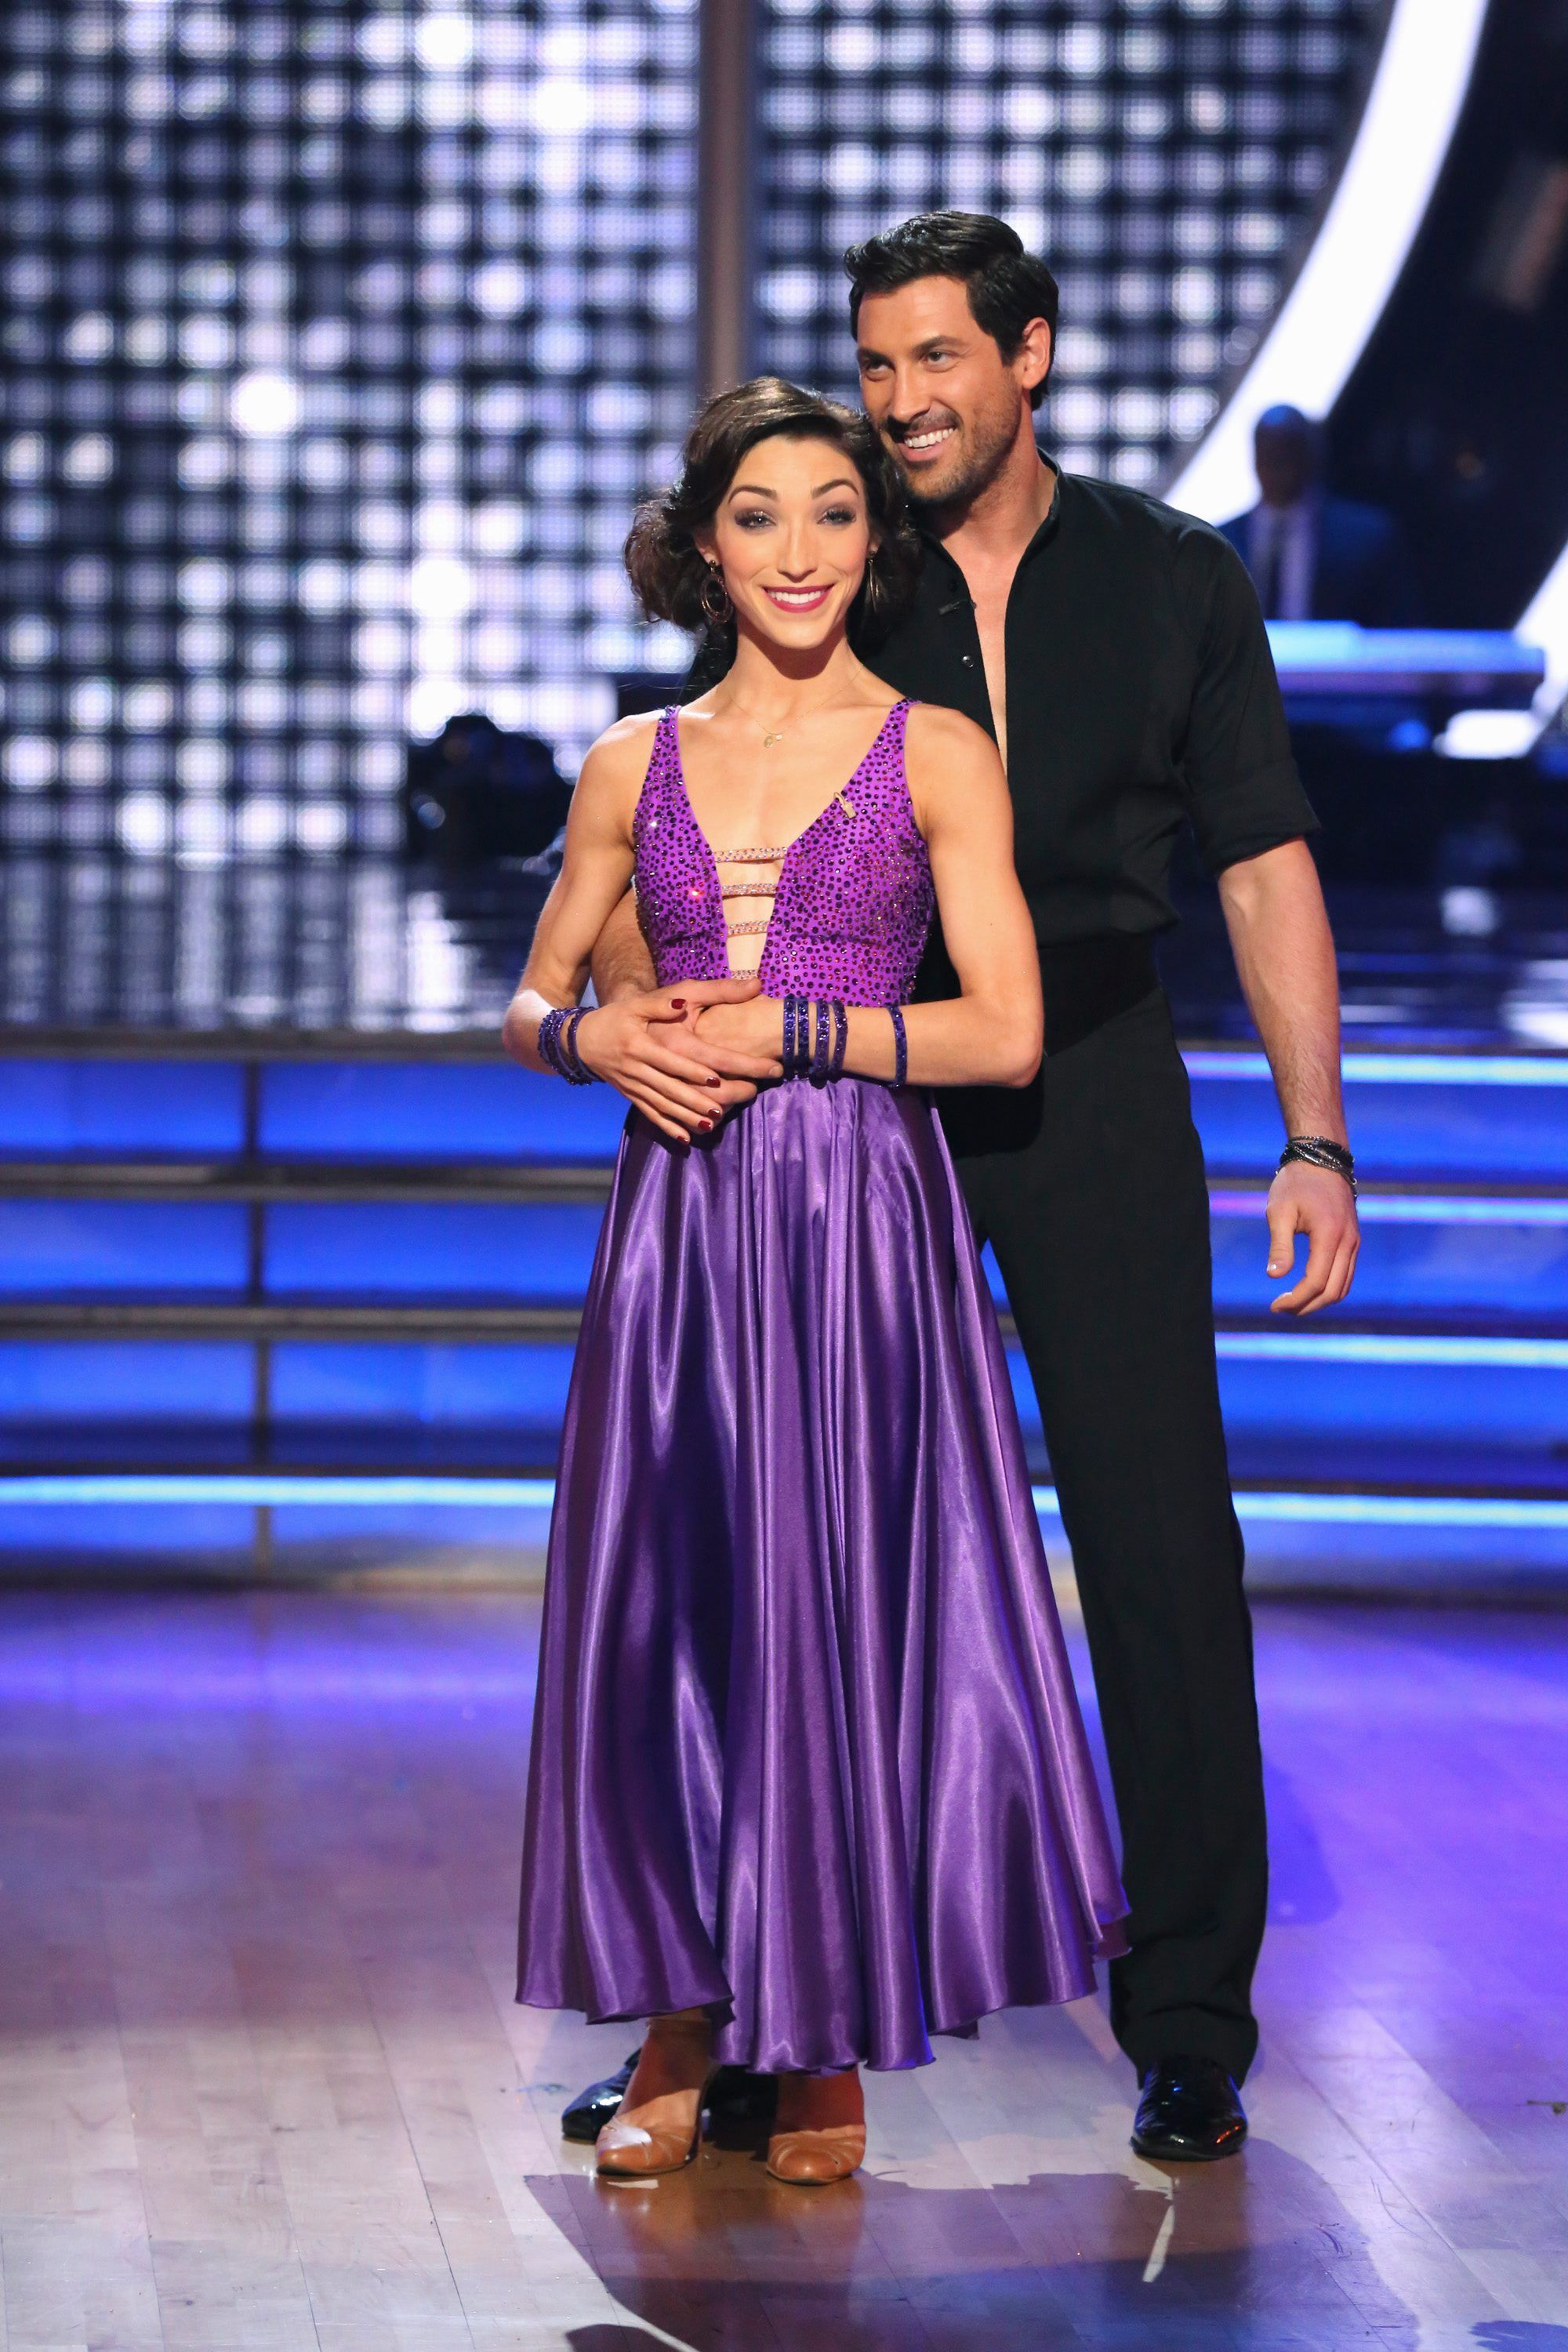 Dancing With The Stars Pairs Who Had The Best Chemistry